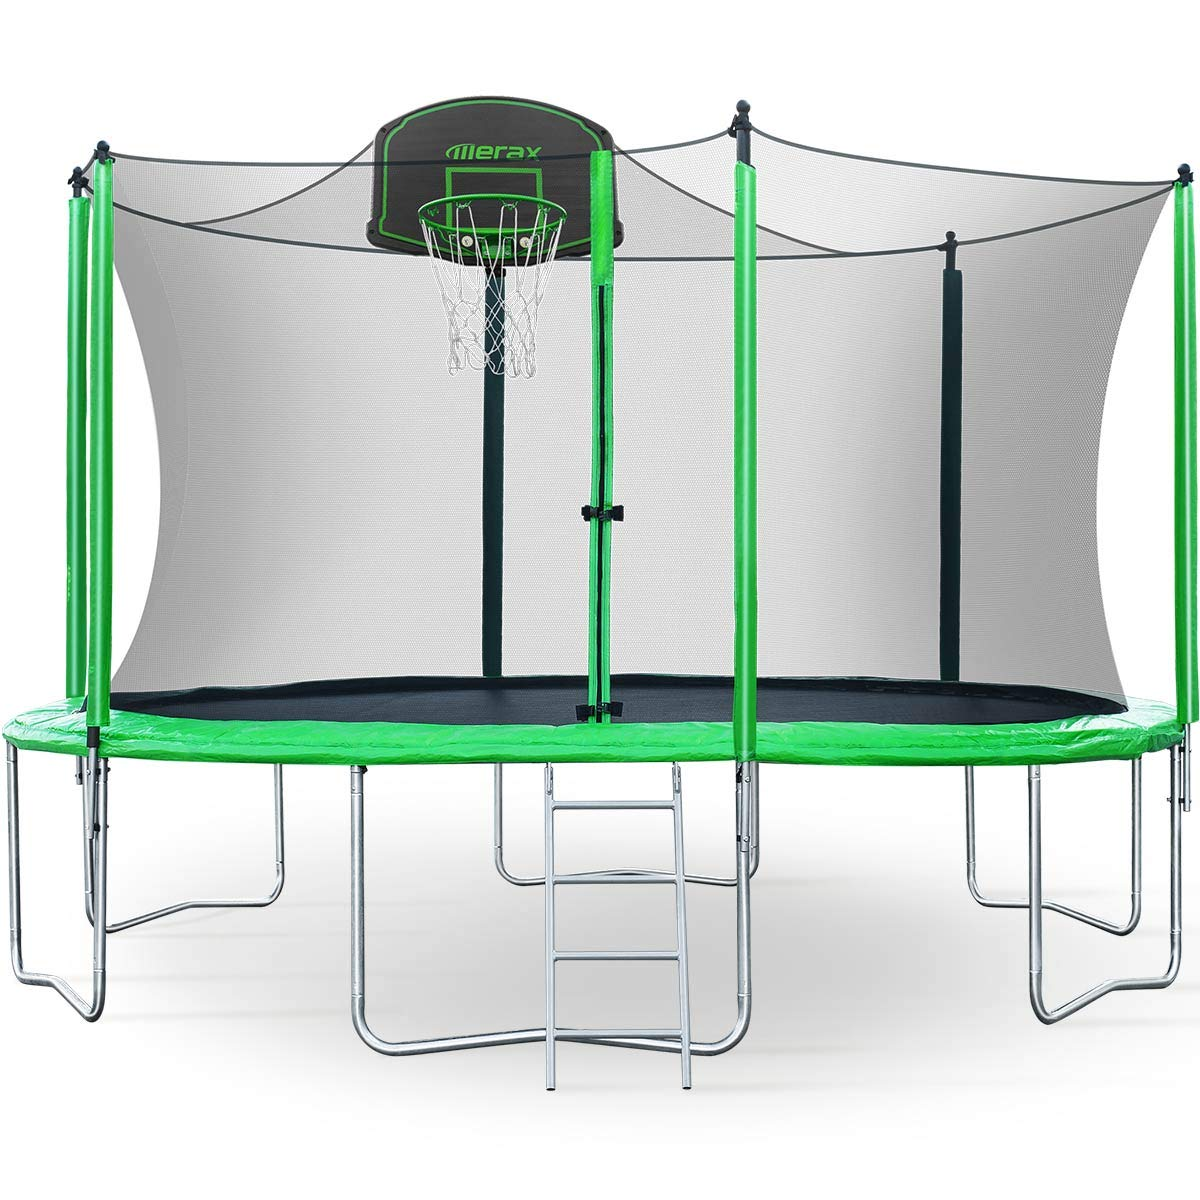 Merax 12FT Trampoline with Safety Enclosure Net, Basketball Hoop and Ladder, Trampoline for Kids (Green 12FT) by Merax